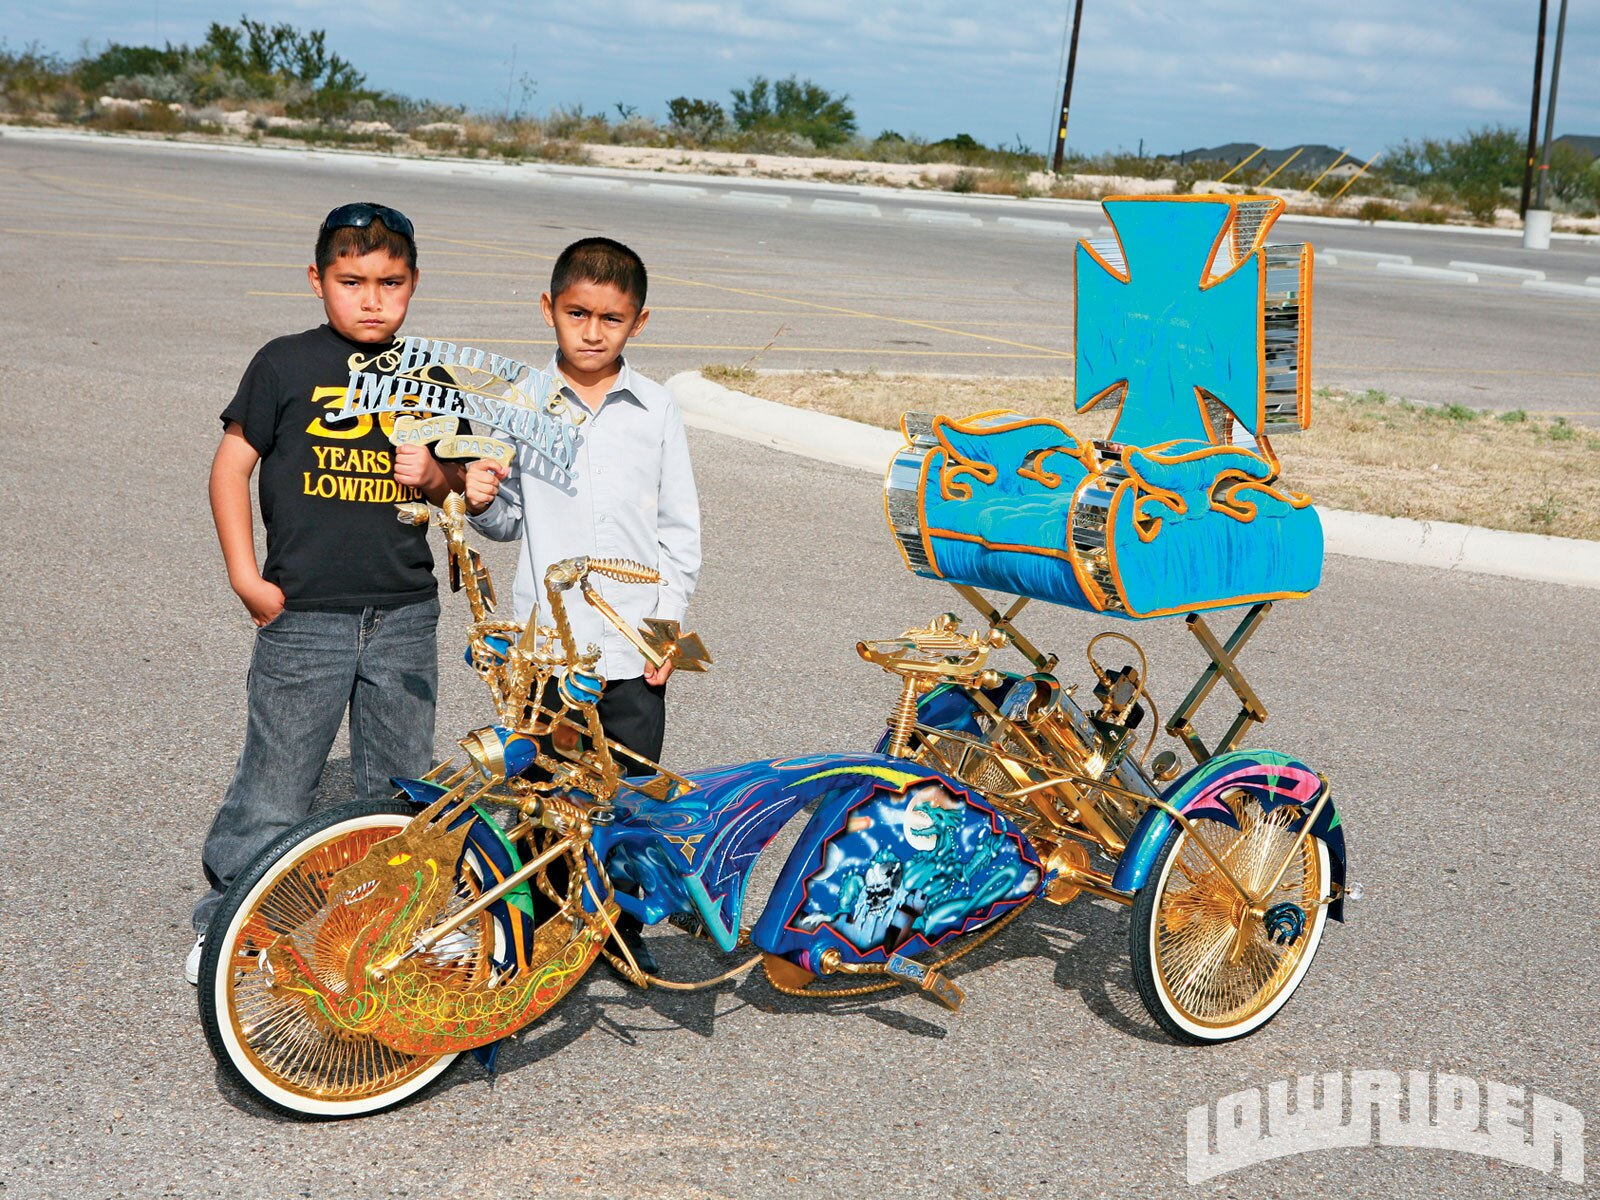 lrmp_1011_04_o-lowrider_bike-owners2